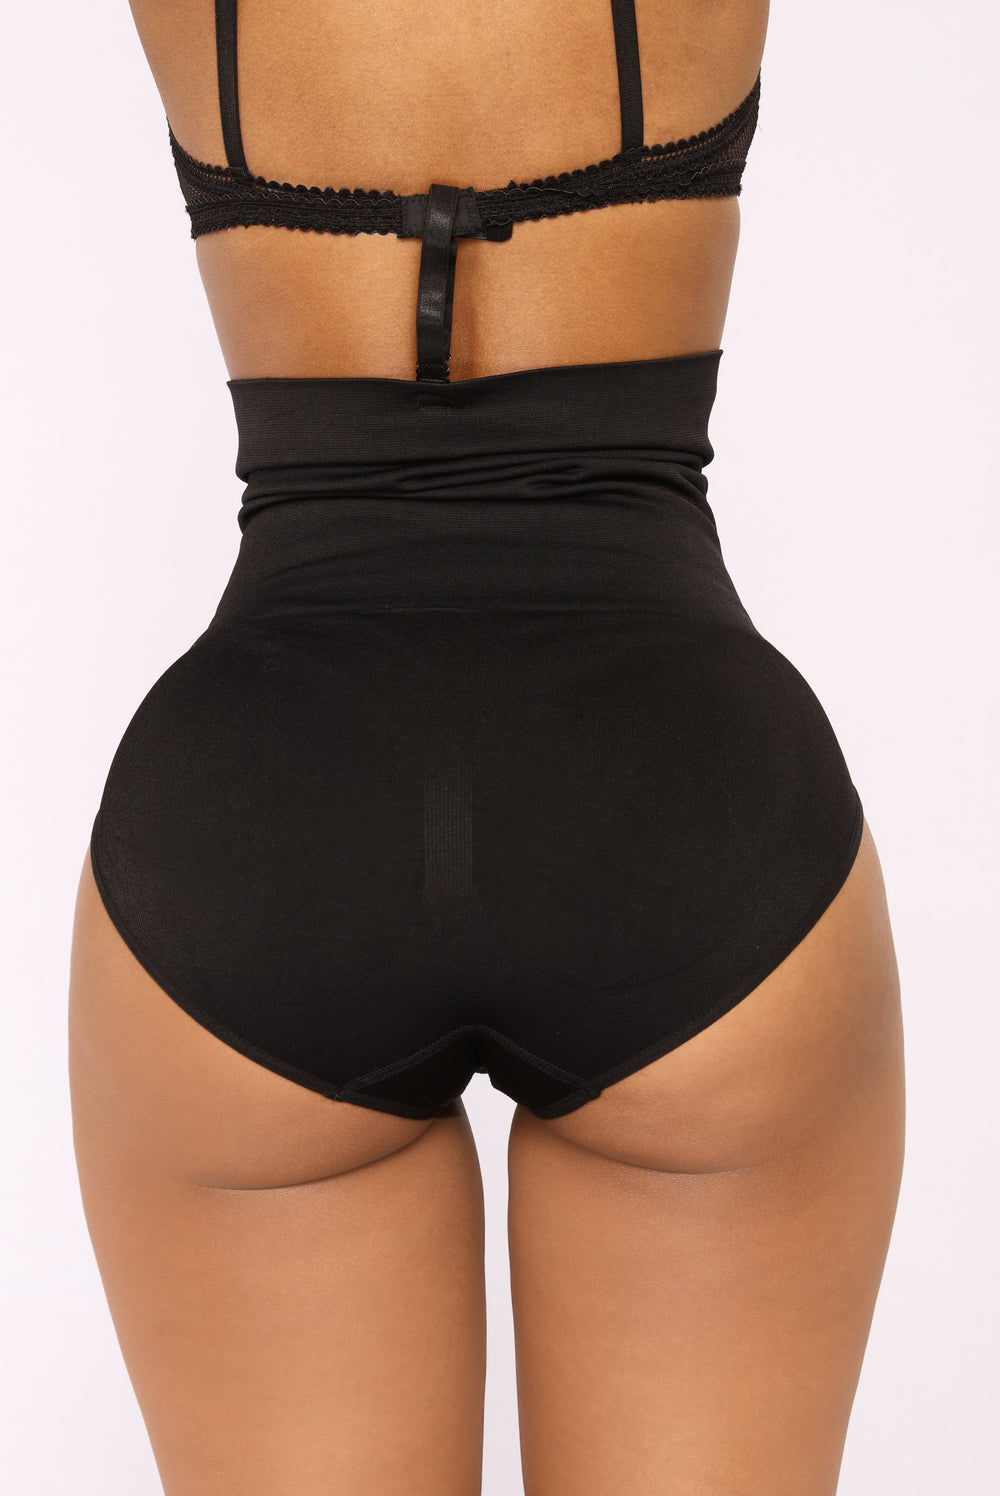 Right And Tight Shapewear Panty - Black